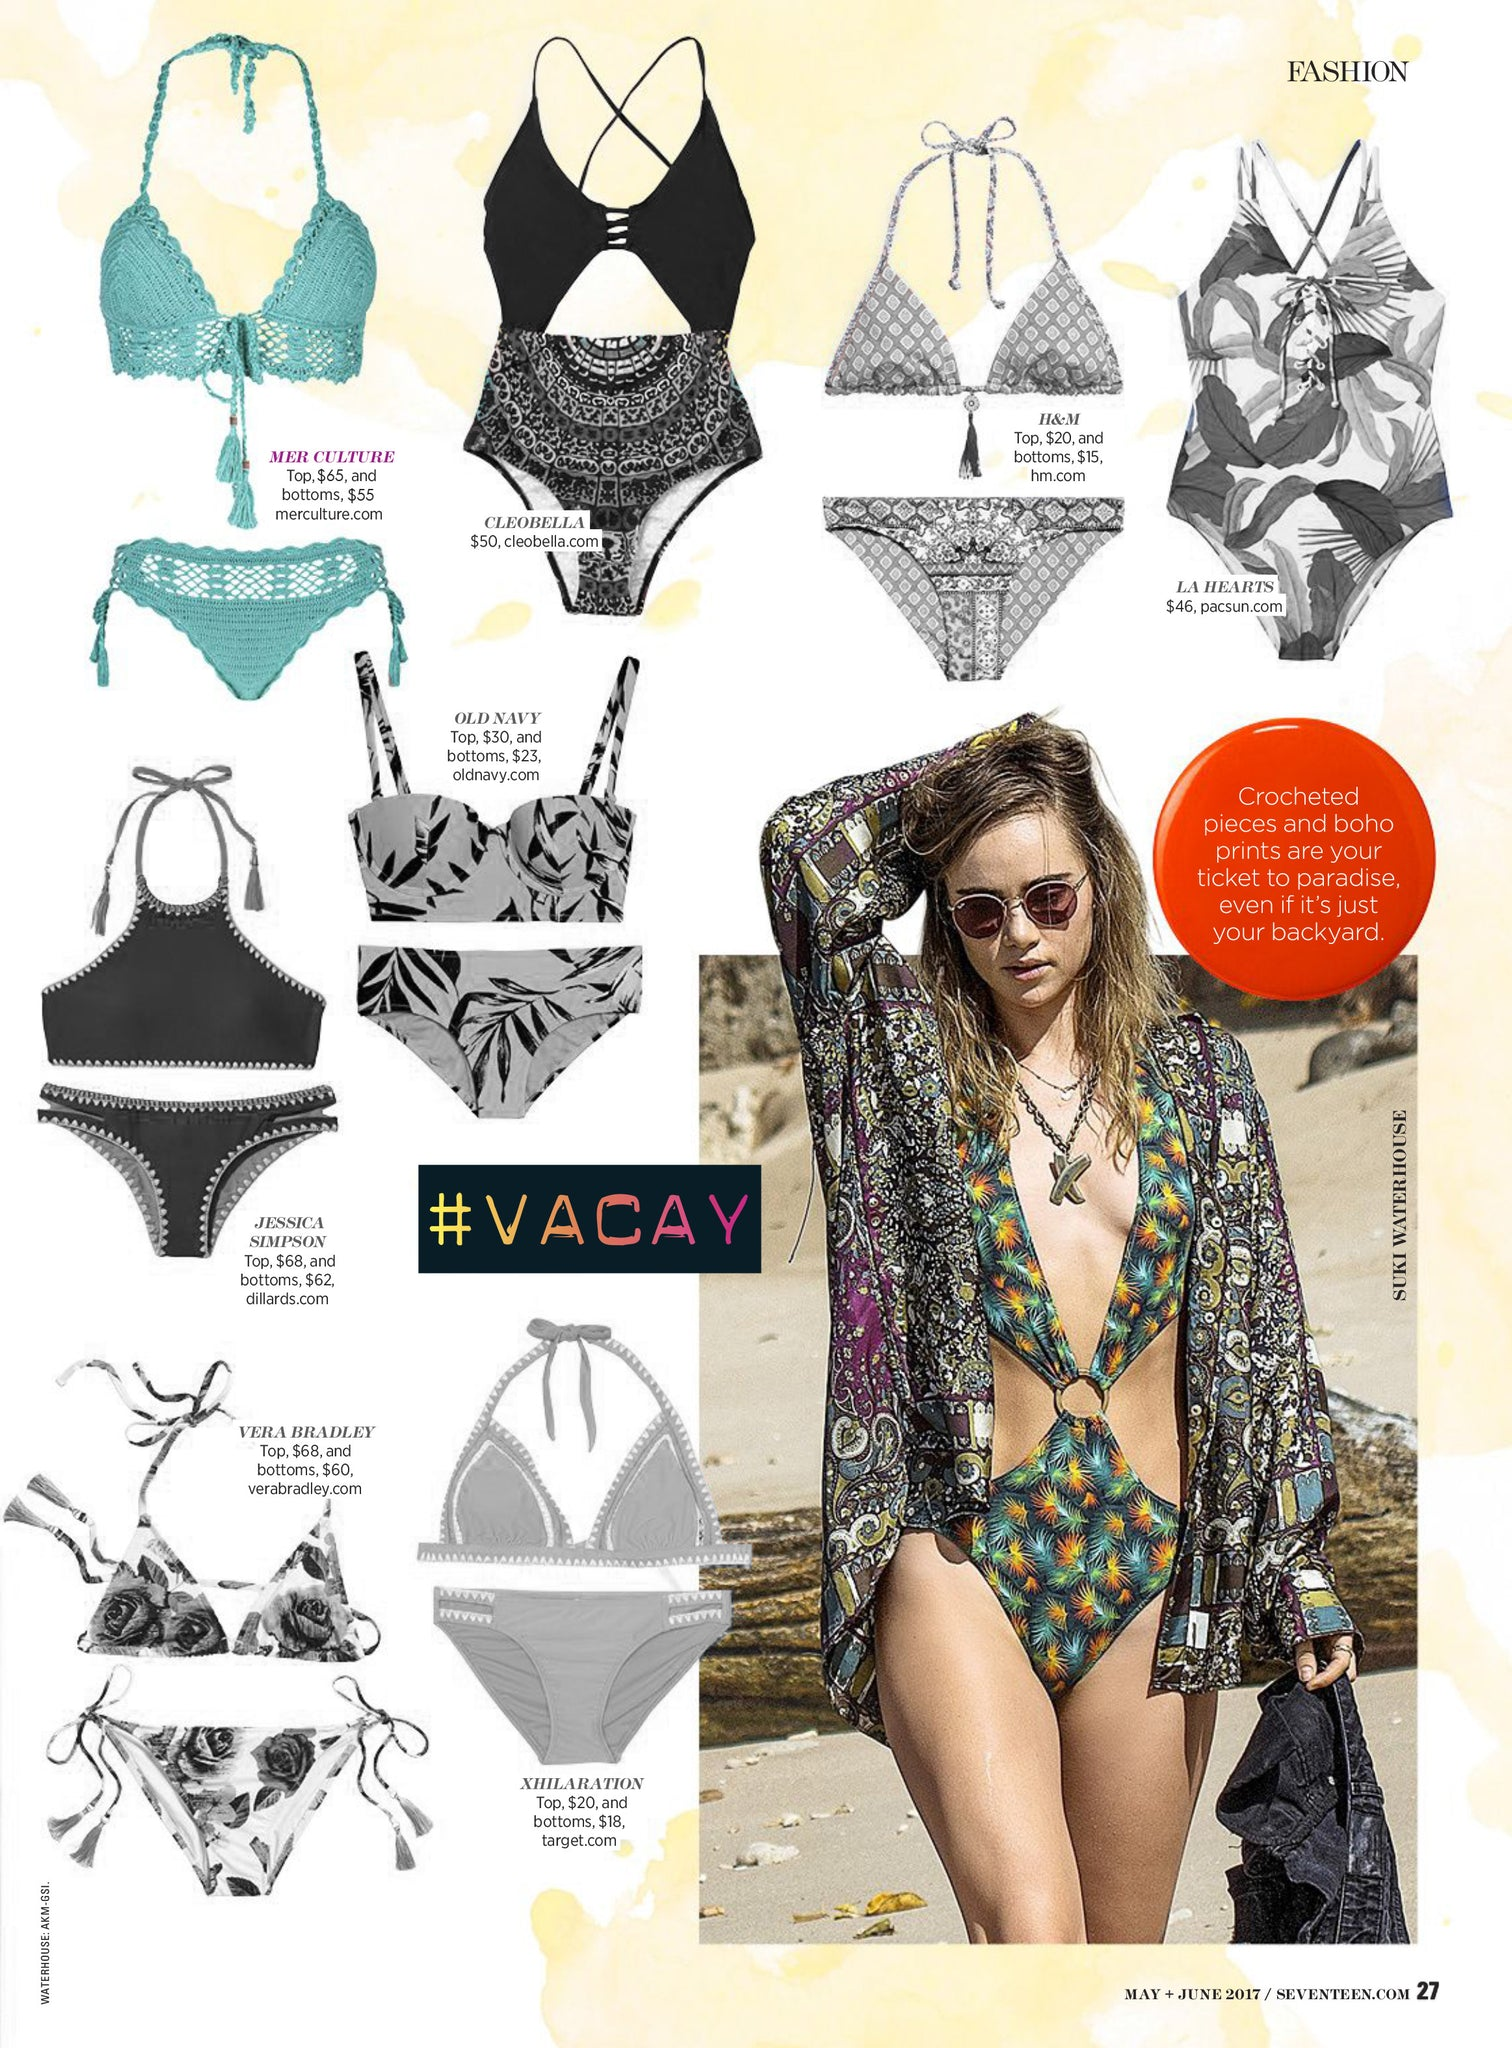 Seventeen Magazine article USA | Press | Mer Culture swimwear | Essaouira midi crochet bikini | #Vacay